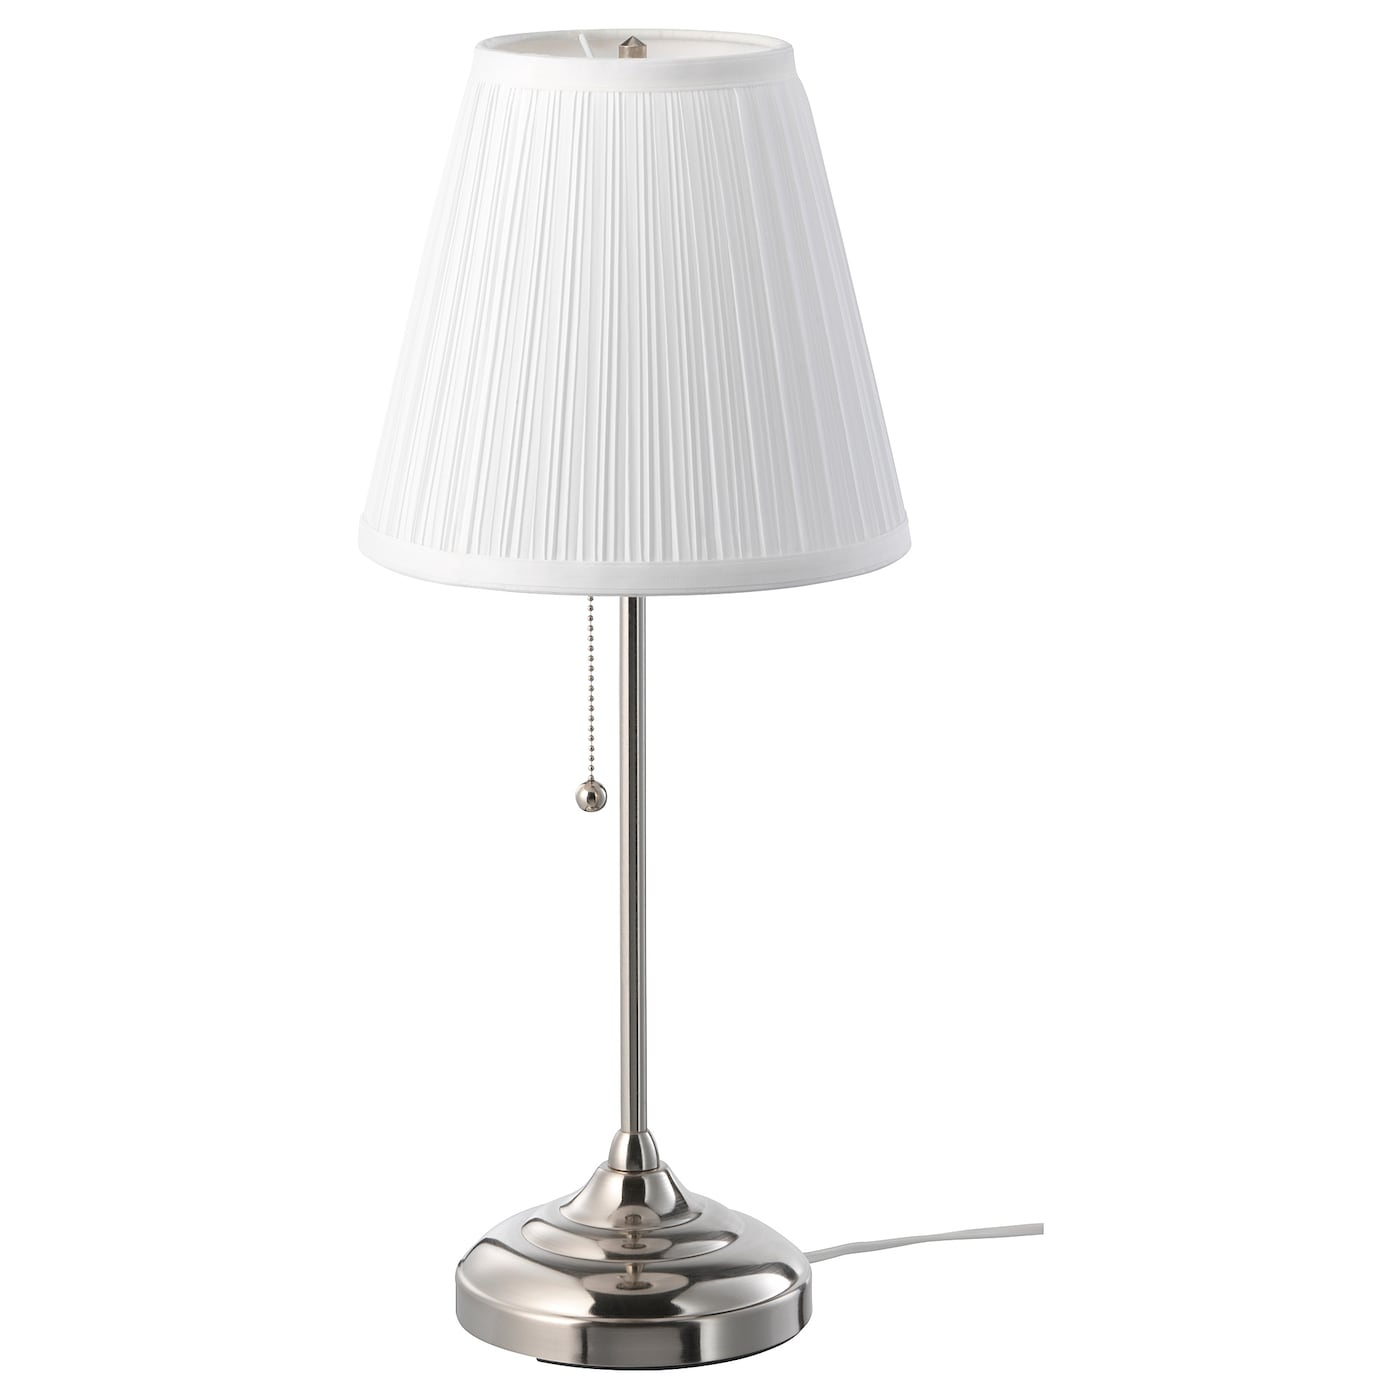 nickel plated, white, Table lamp IKEA